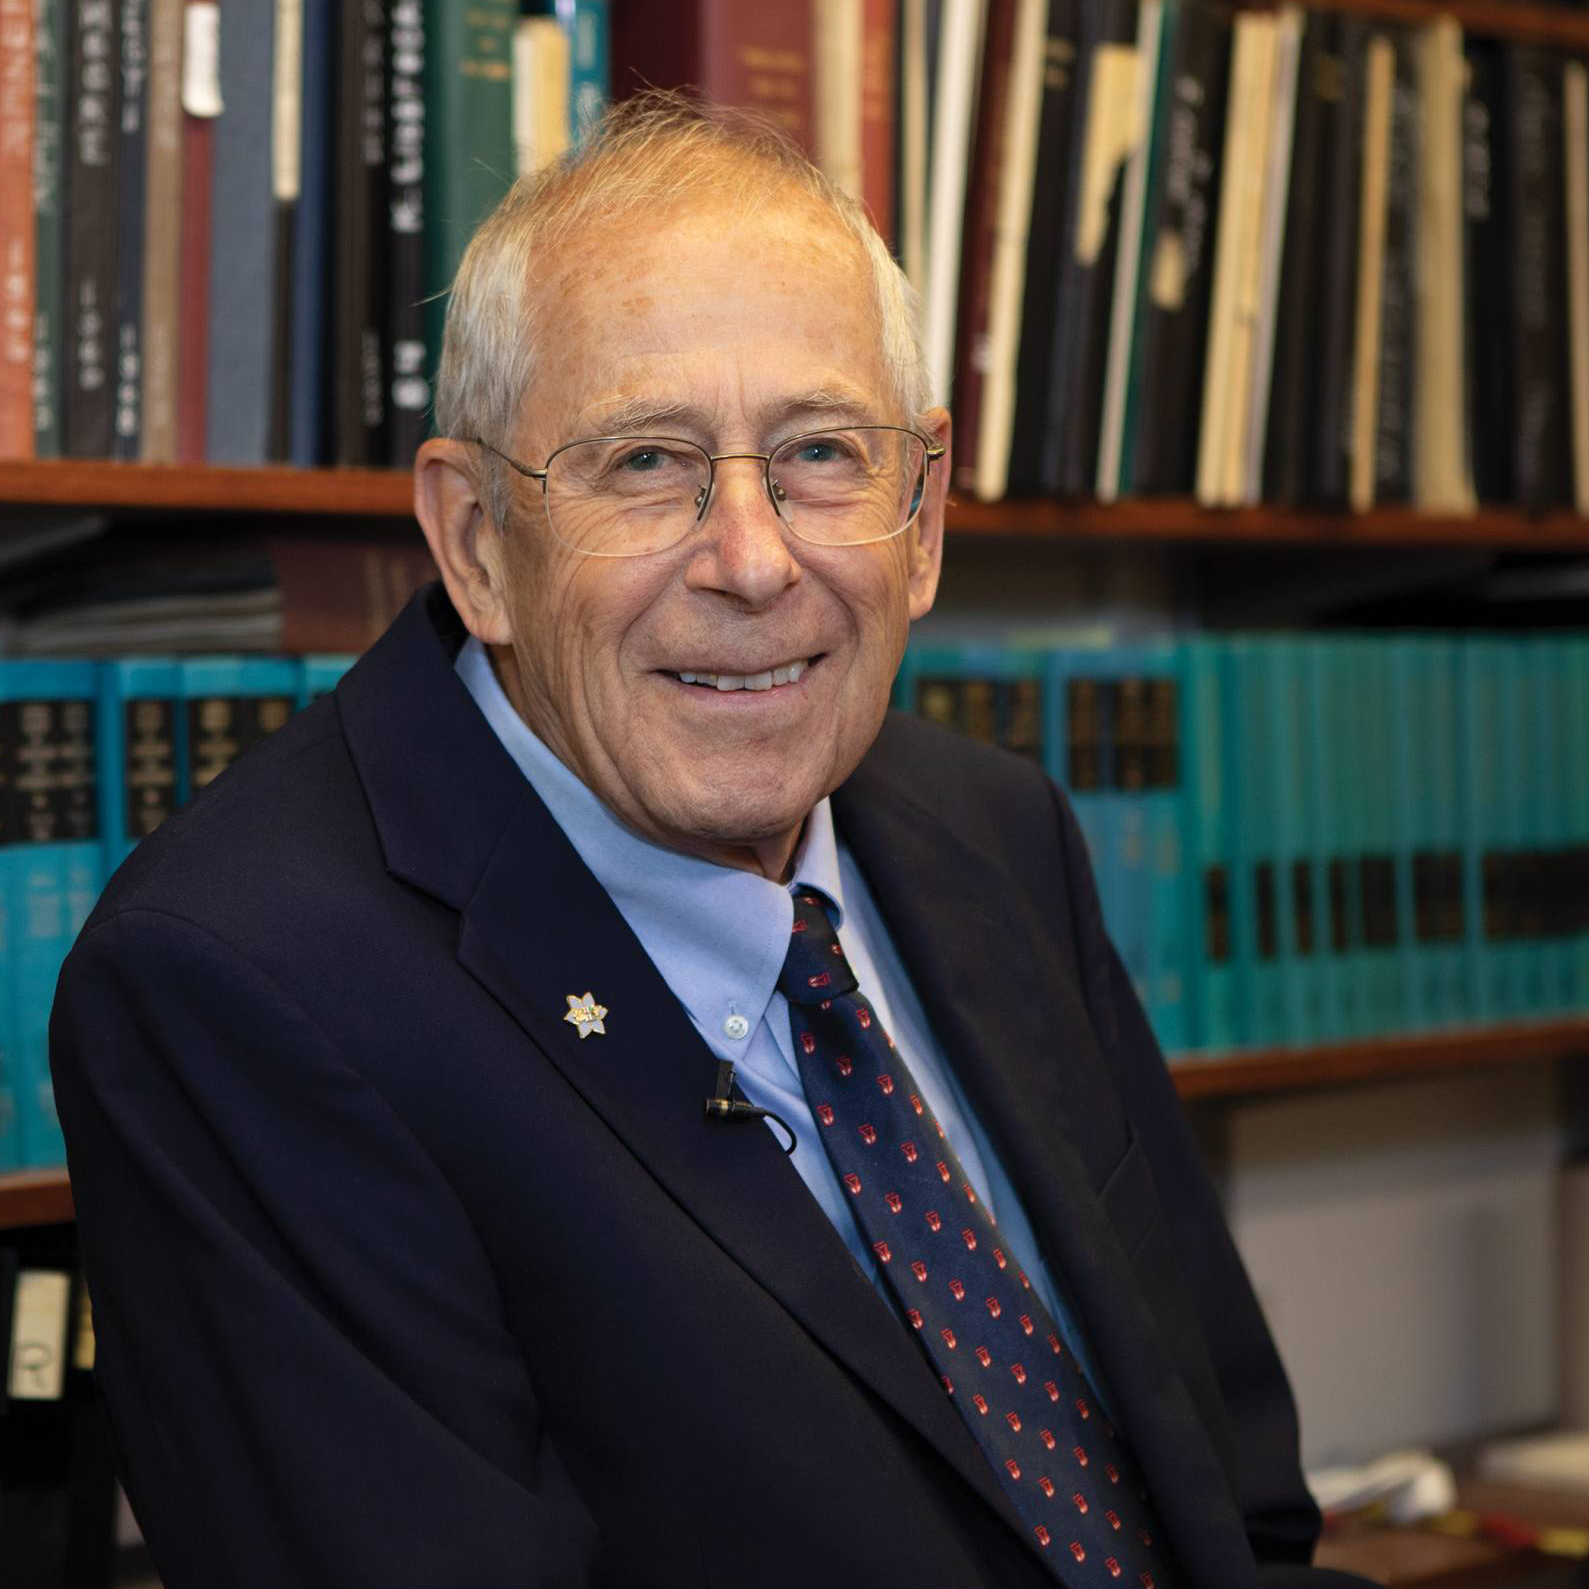 Congratulations to James Peebles, Joint Winner of the Nobel Prize in Physics